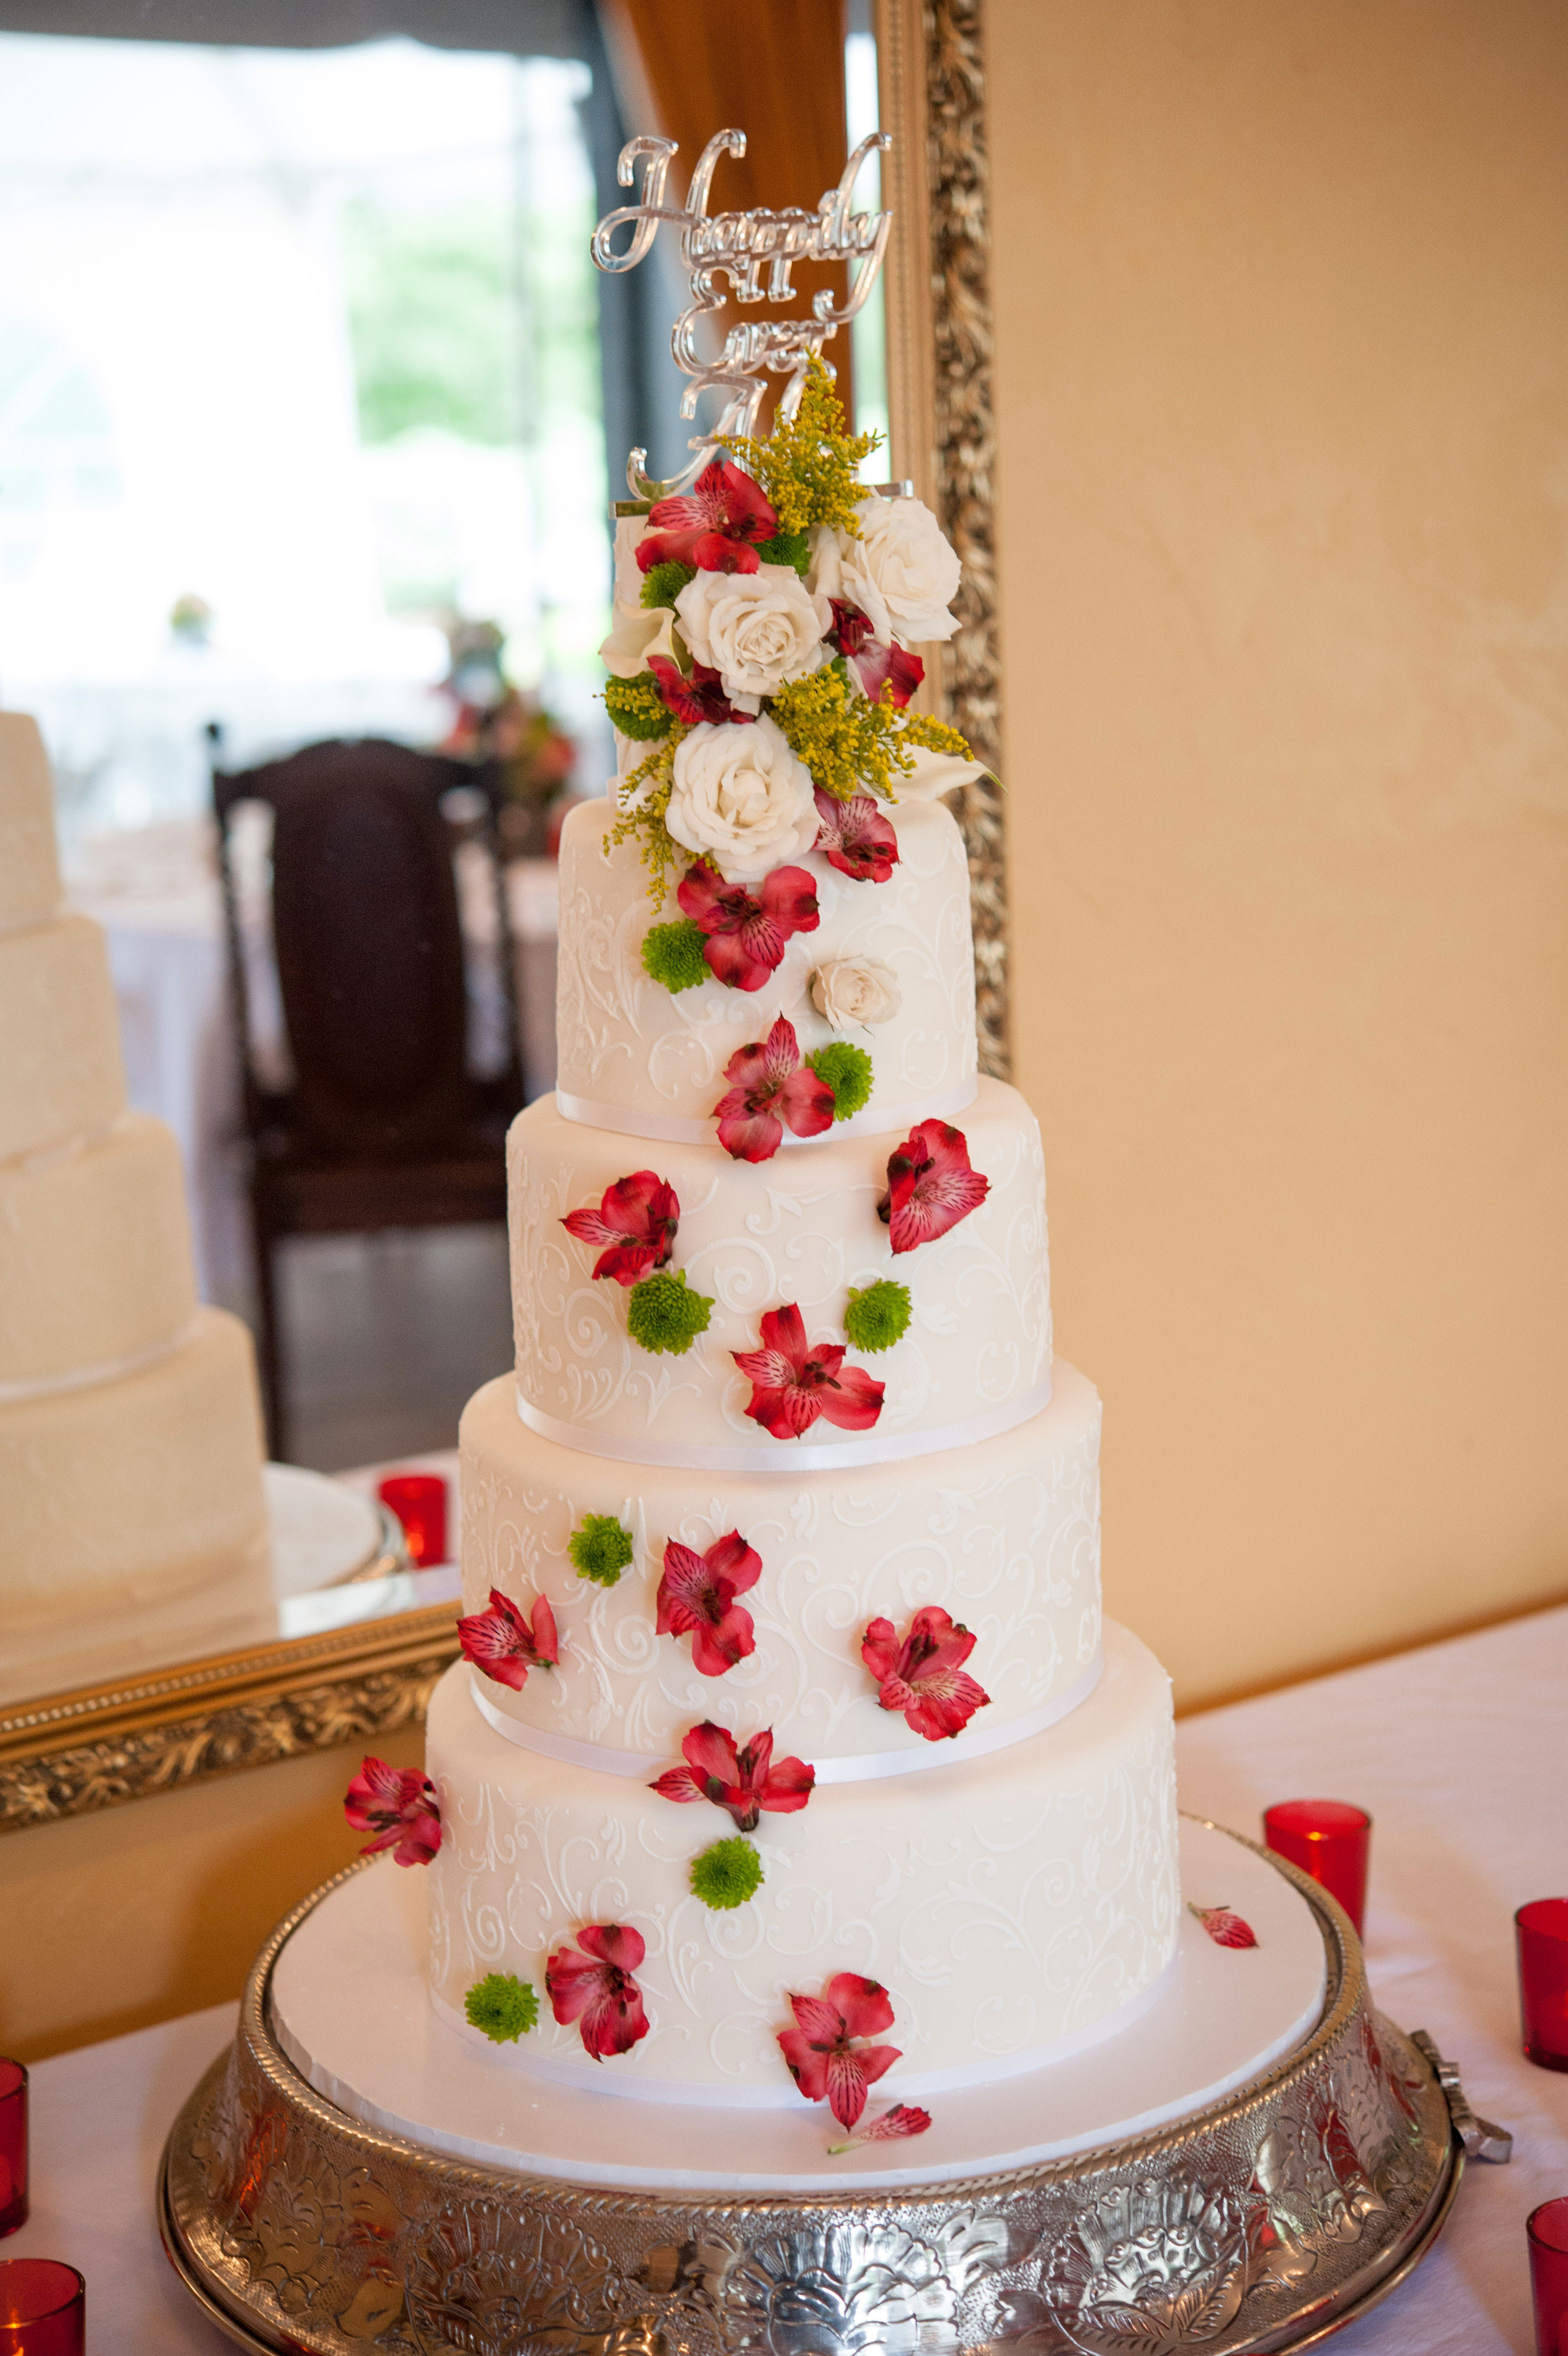 Prices For Wedding Cakes  Wedding cake pricing explained A little help with your